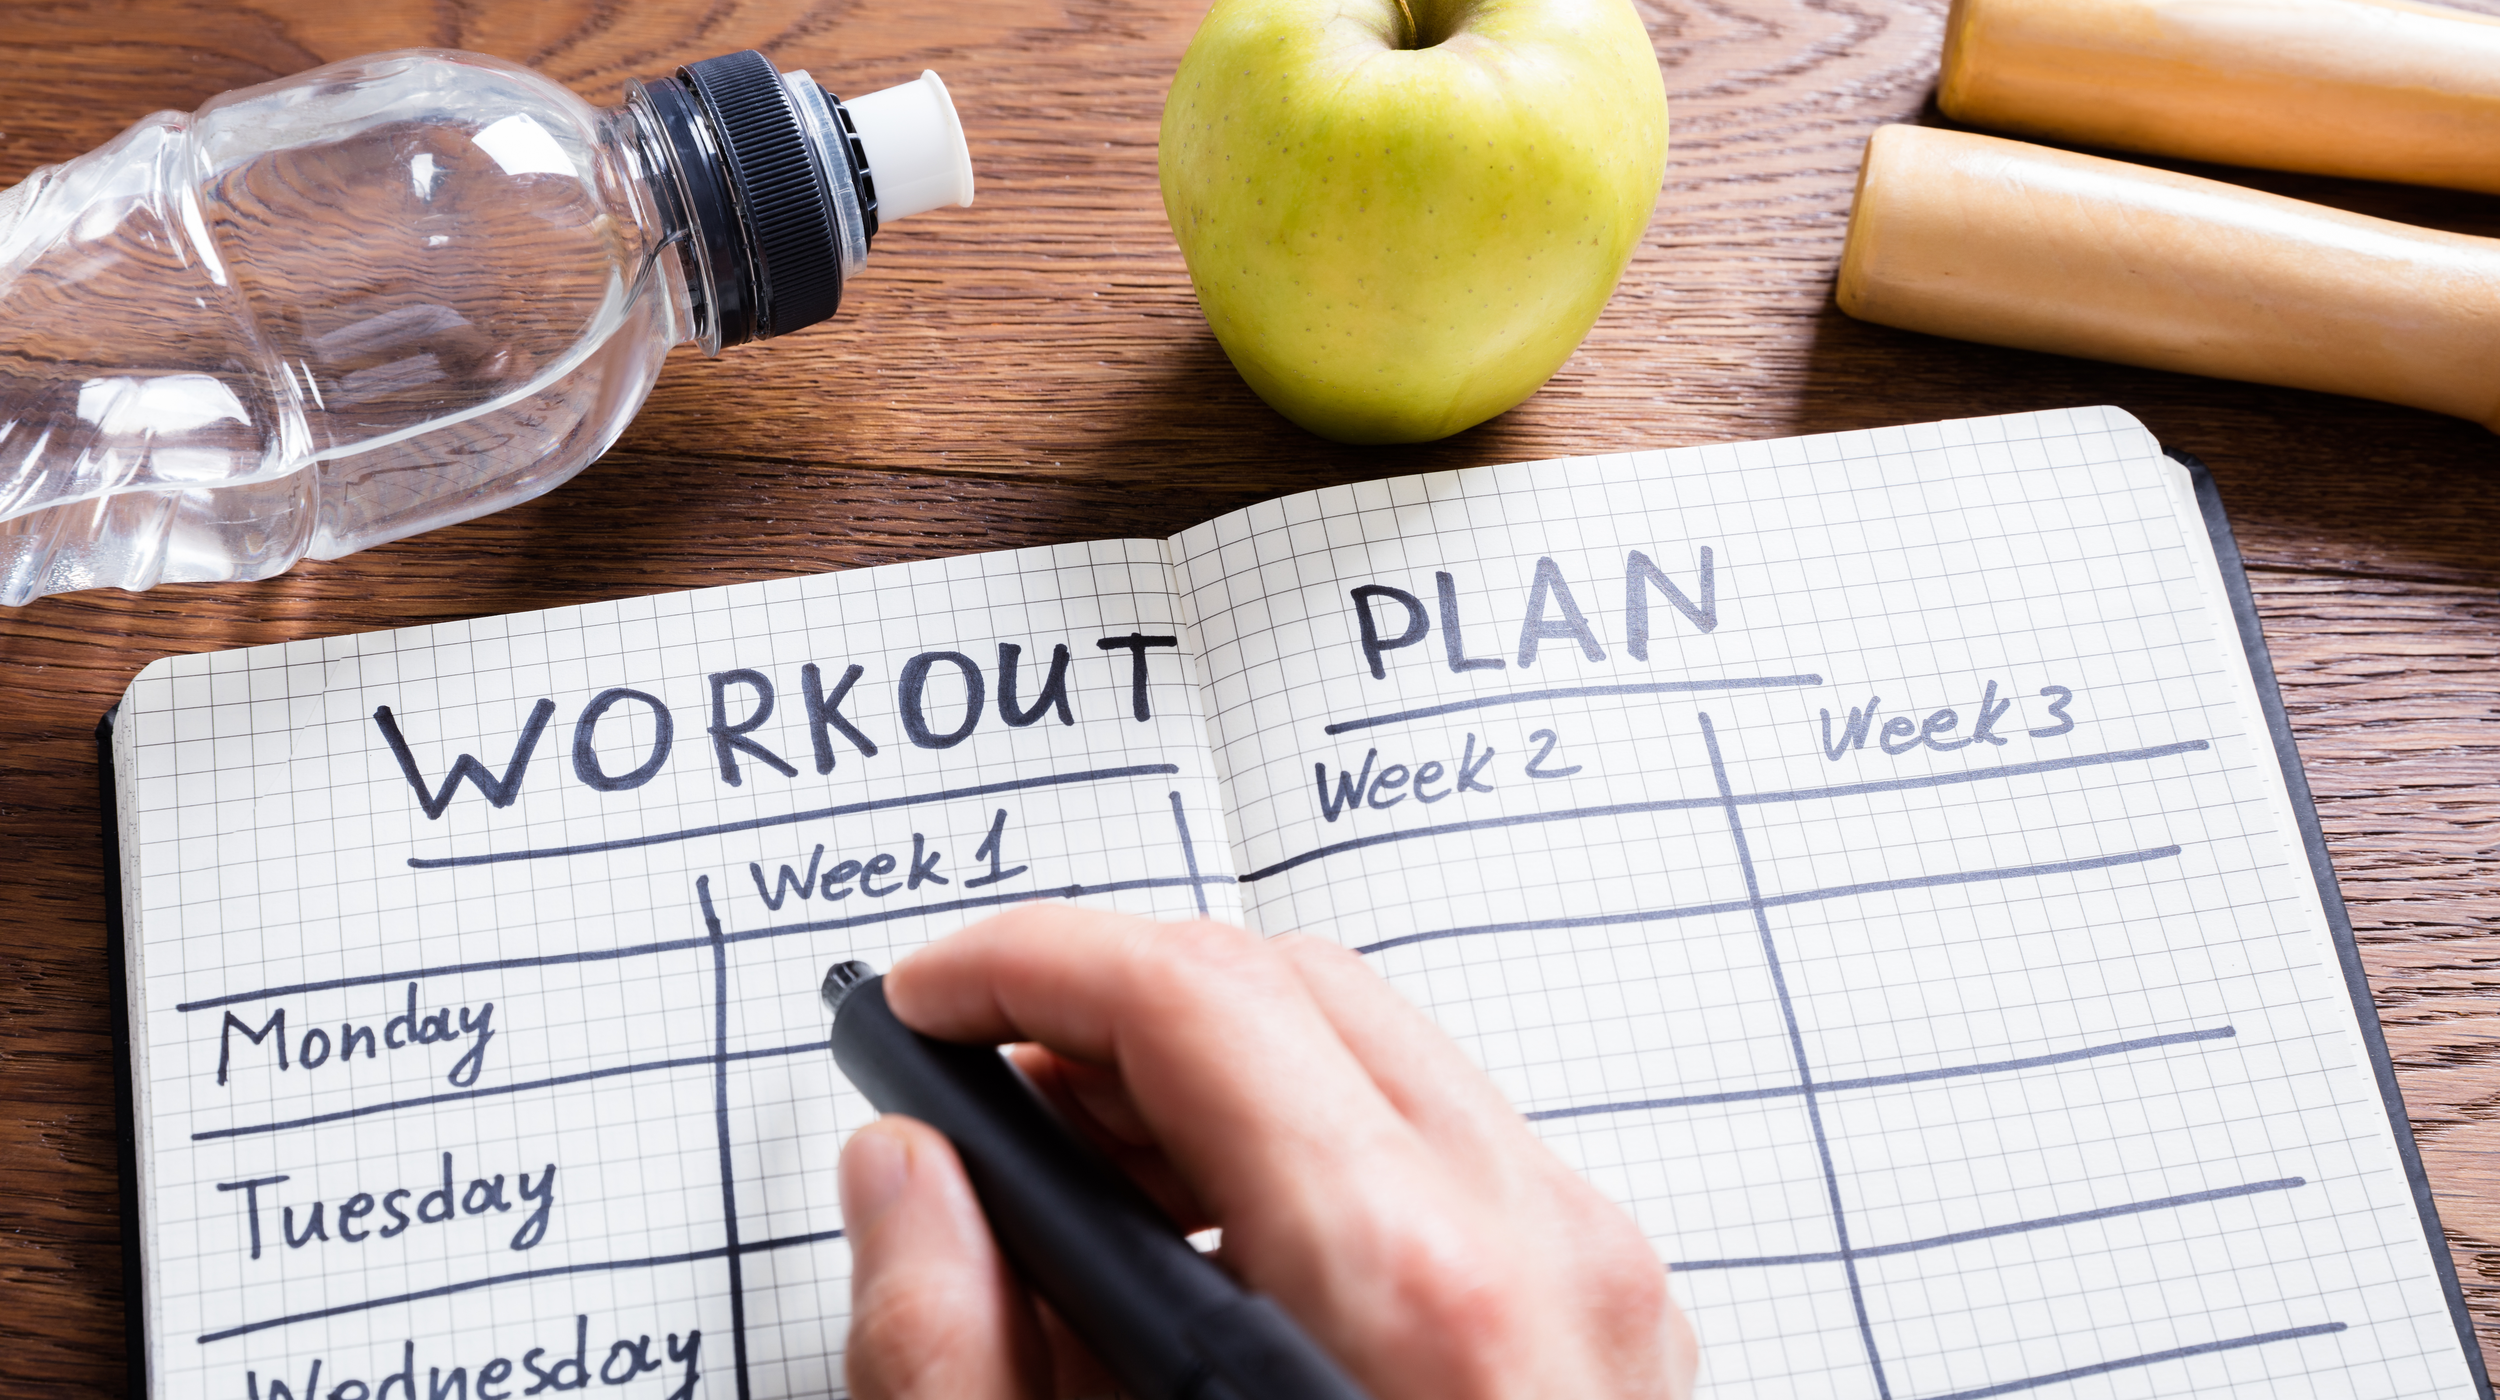 How to Plan Your Workout Routine if you are an Ectomorph